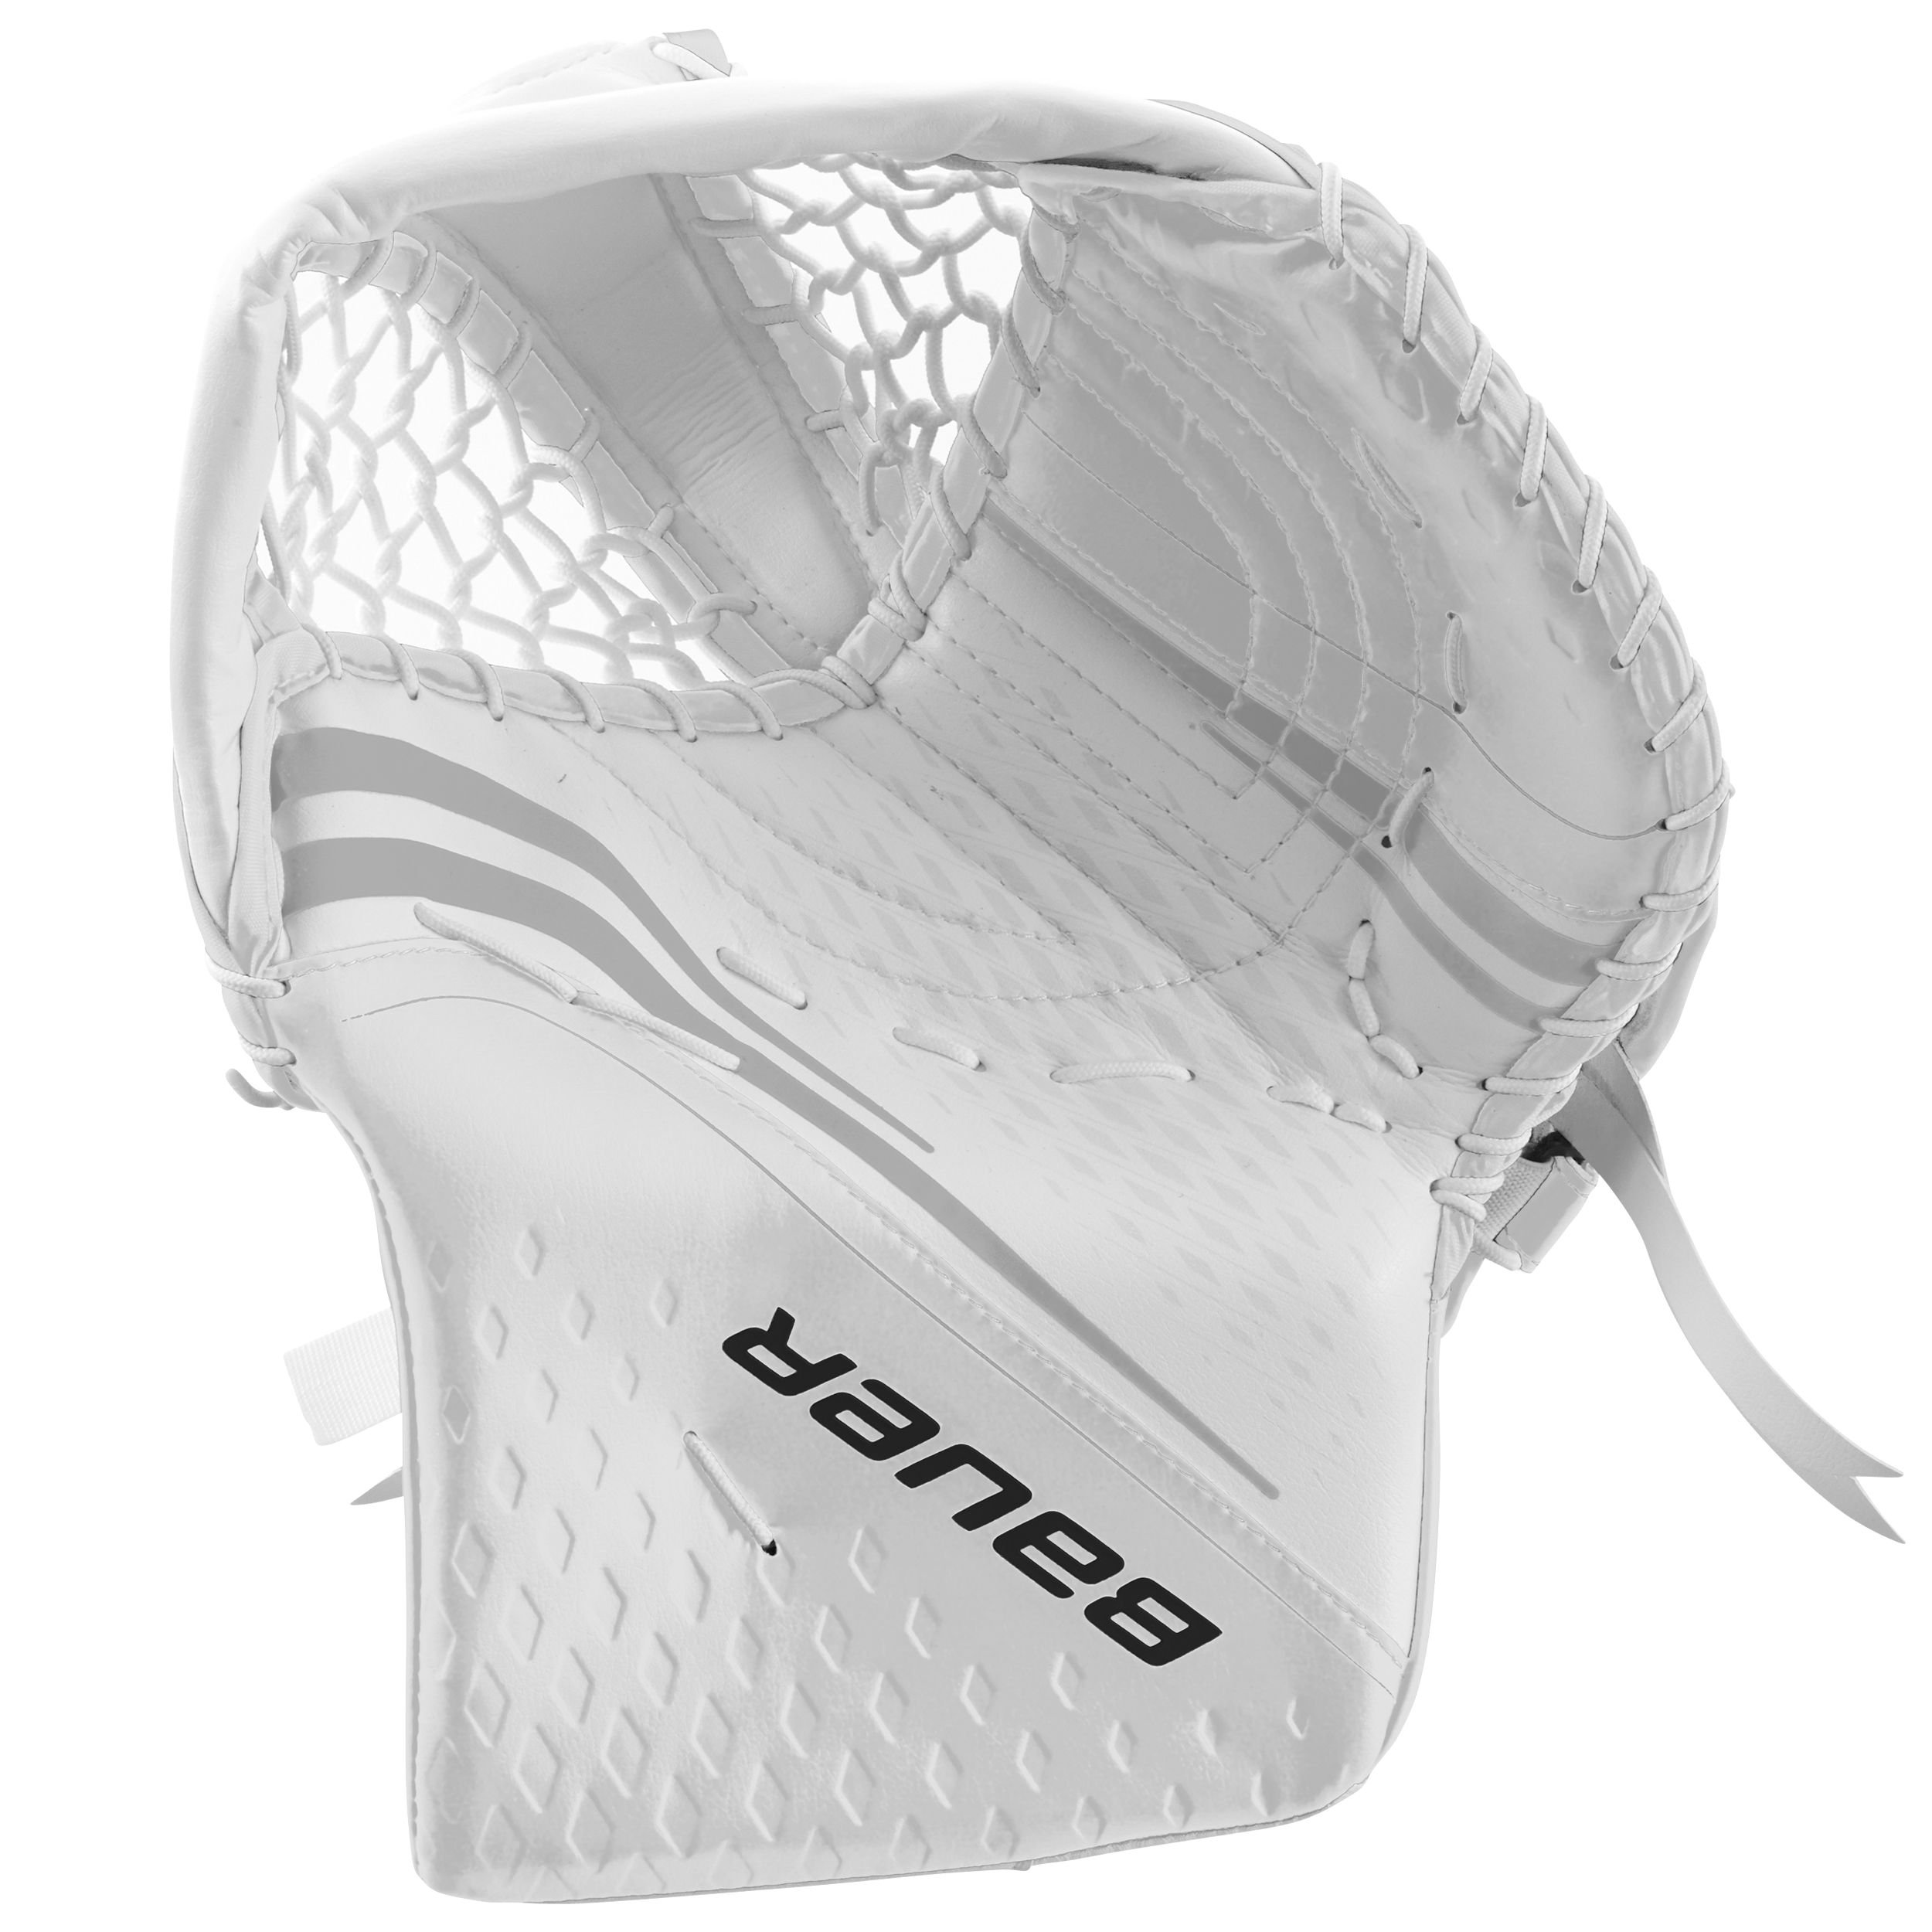 Vapor 2X Catch Glove Senior